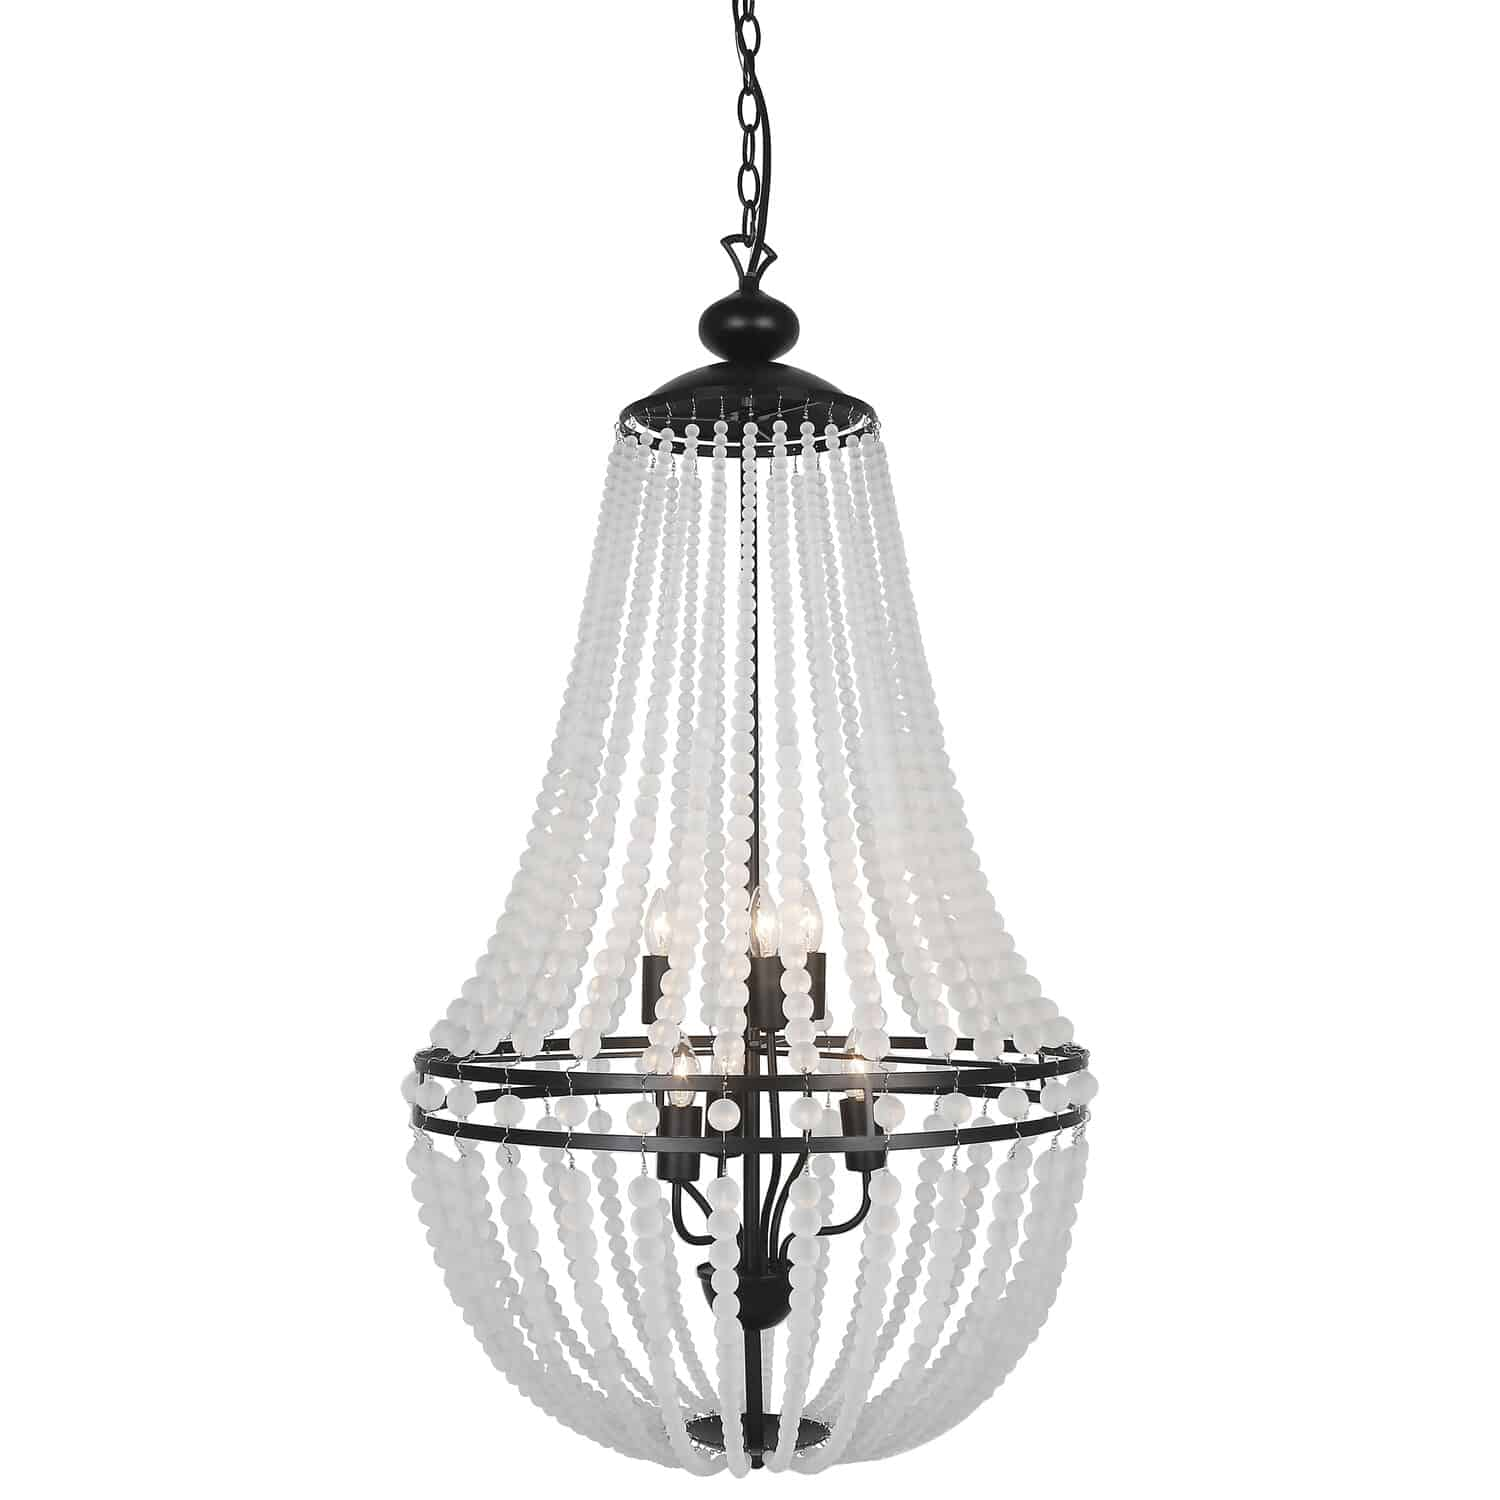 6 Light Incandescent Chandelier Matte Black Finish with Frosted Beads